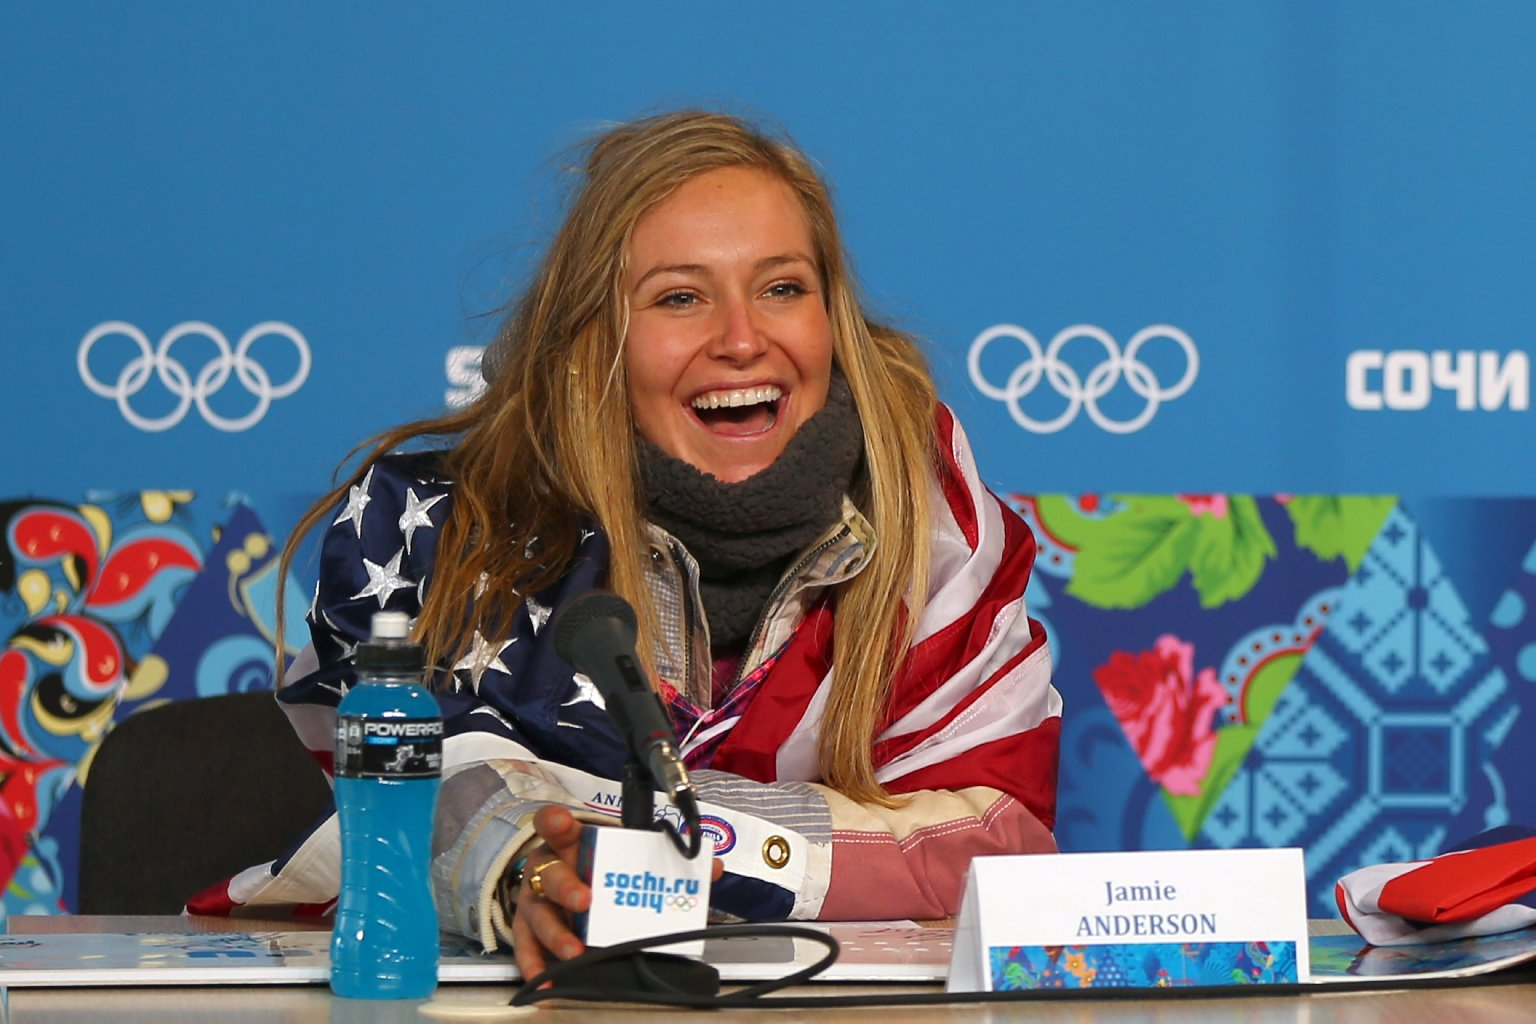 South Lake Tahoe's Jamie Anderson at press conference following her gold medal performance in women's snowboard slopestyle at Sochi Olympics. (Mike Ehrmann/Getty Images)